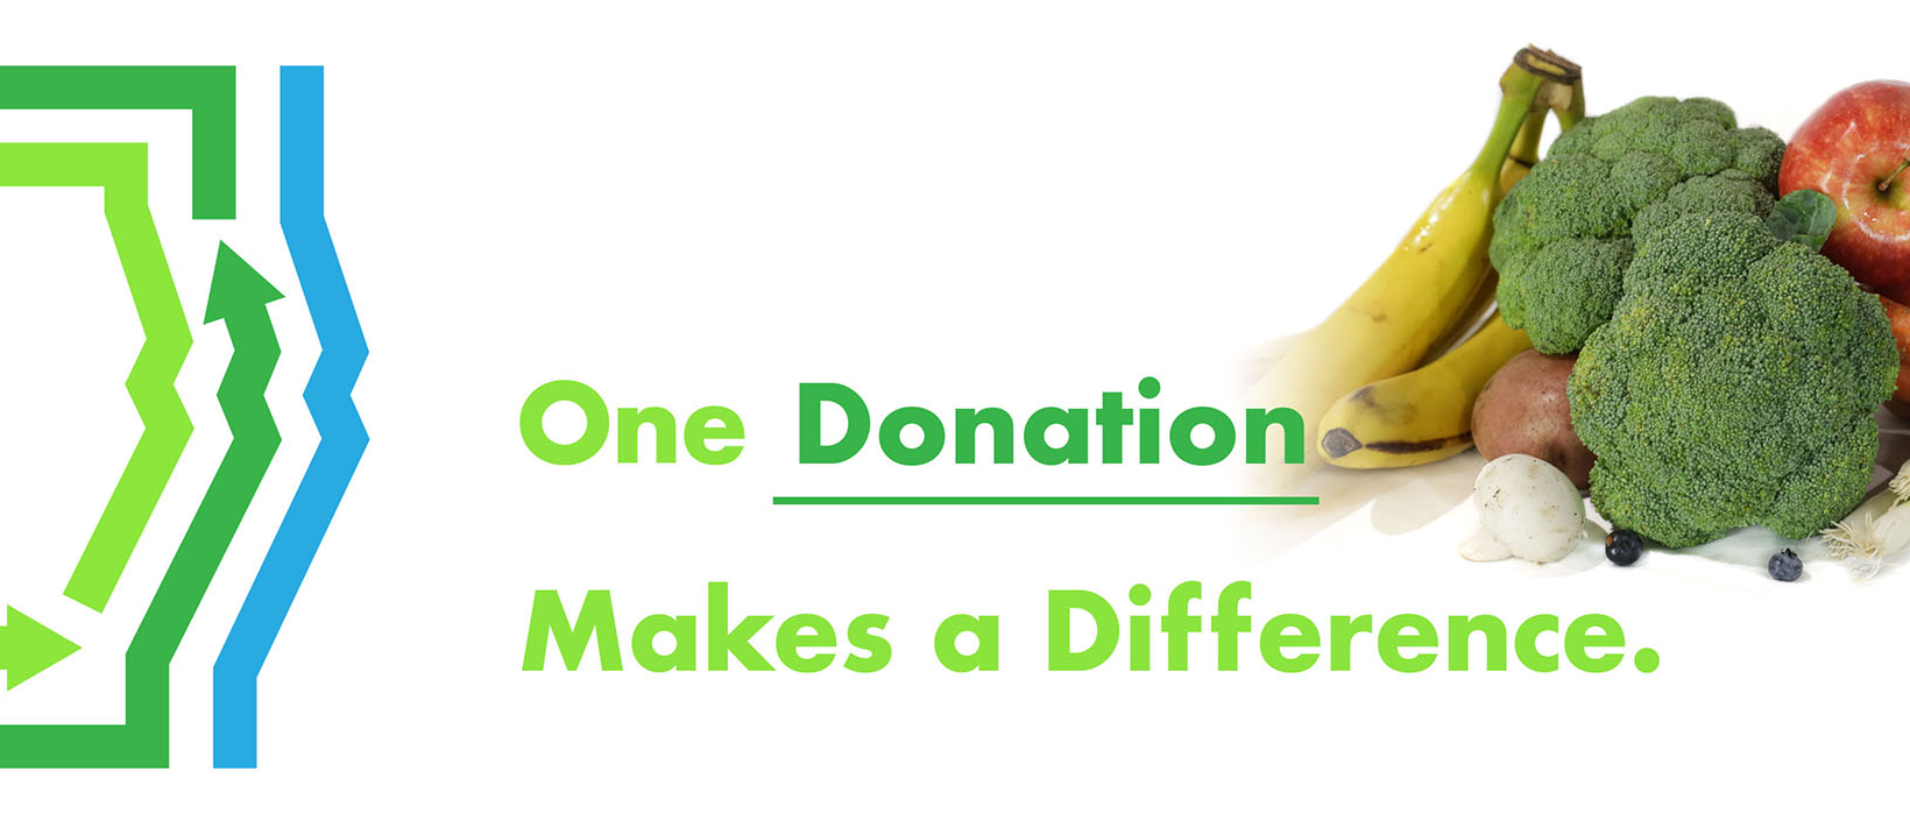 donations make a difference